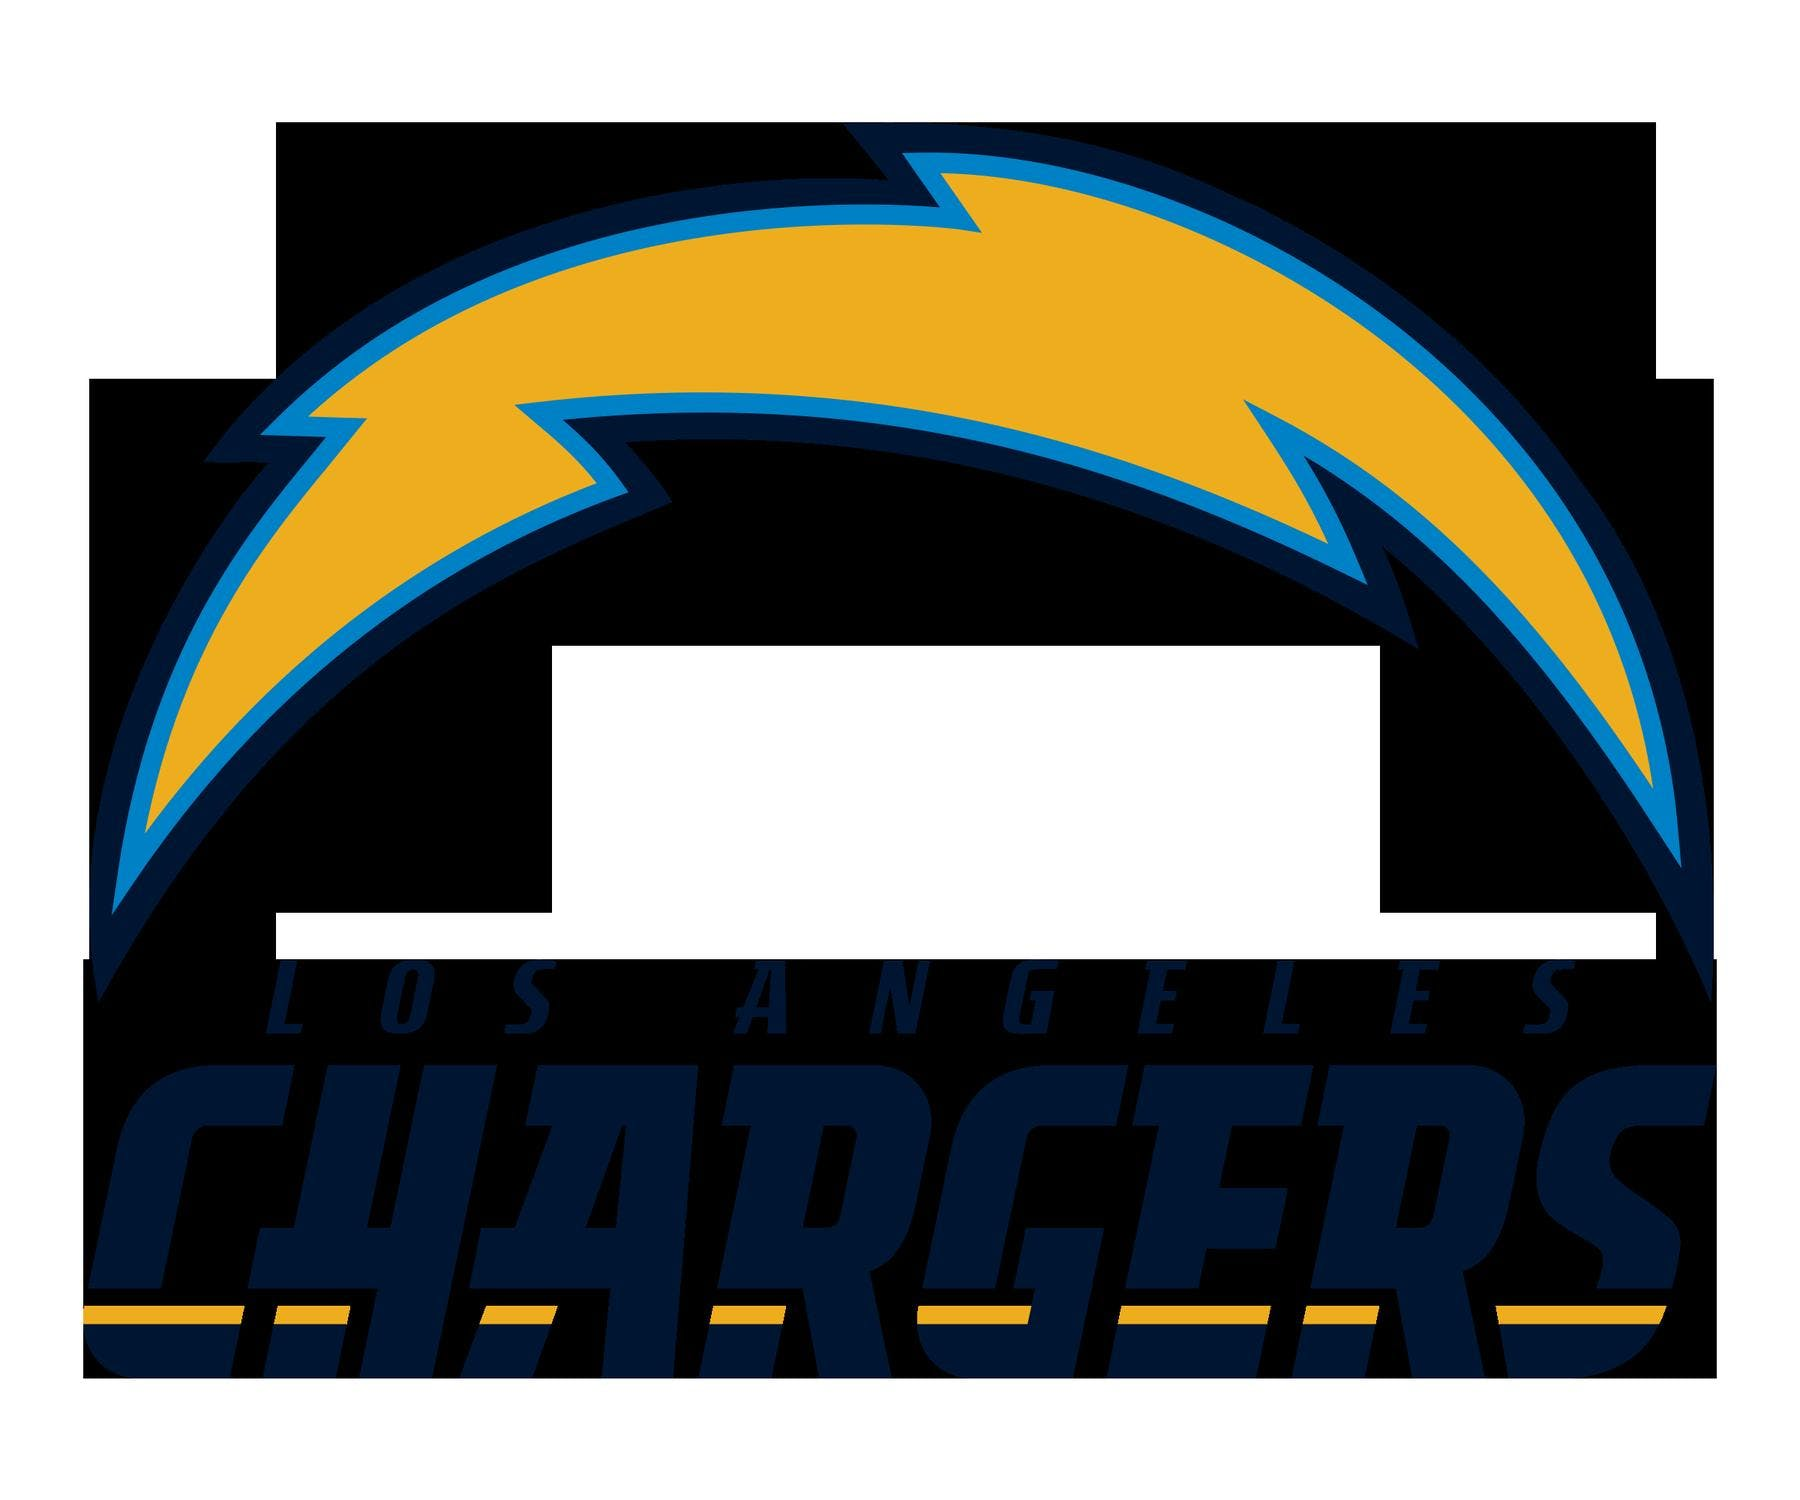 9a307002f51 Los Angeles Chargers Officially Licensed NFL Apparel Liquidation ...